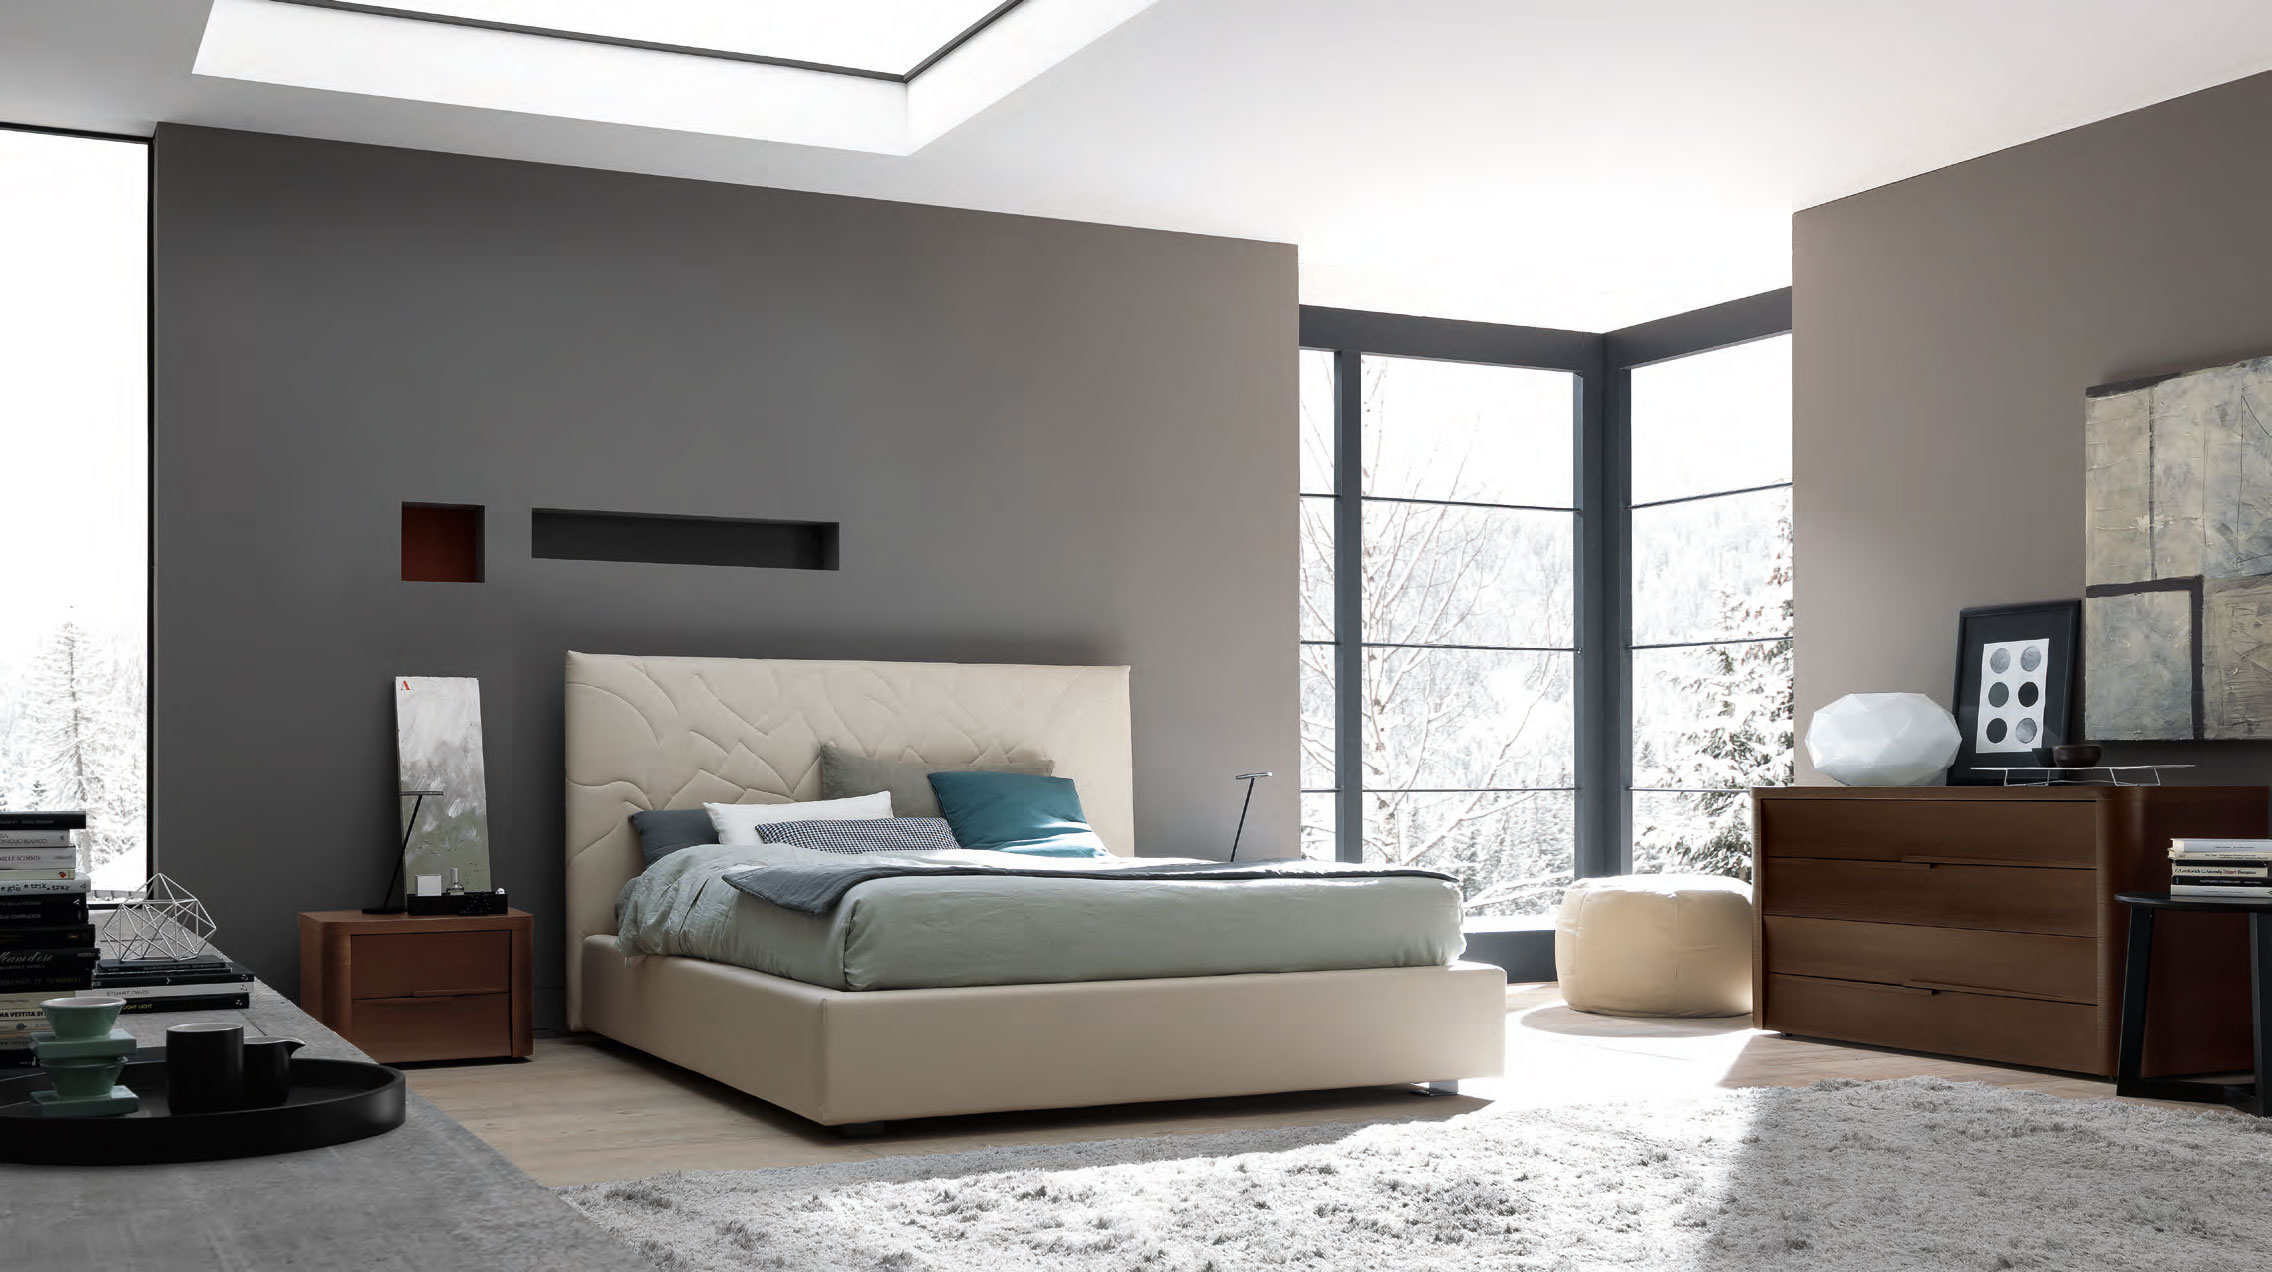 VIEW IN GALLERY Modern Bedroom Design With Dark Wall And White